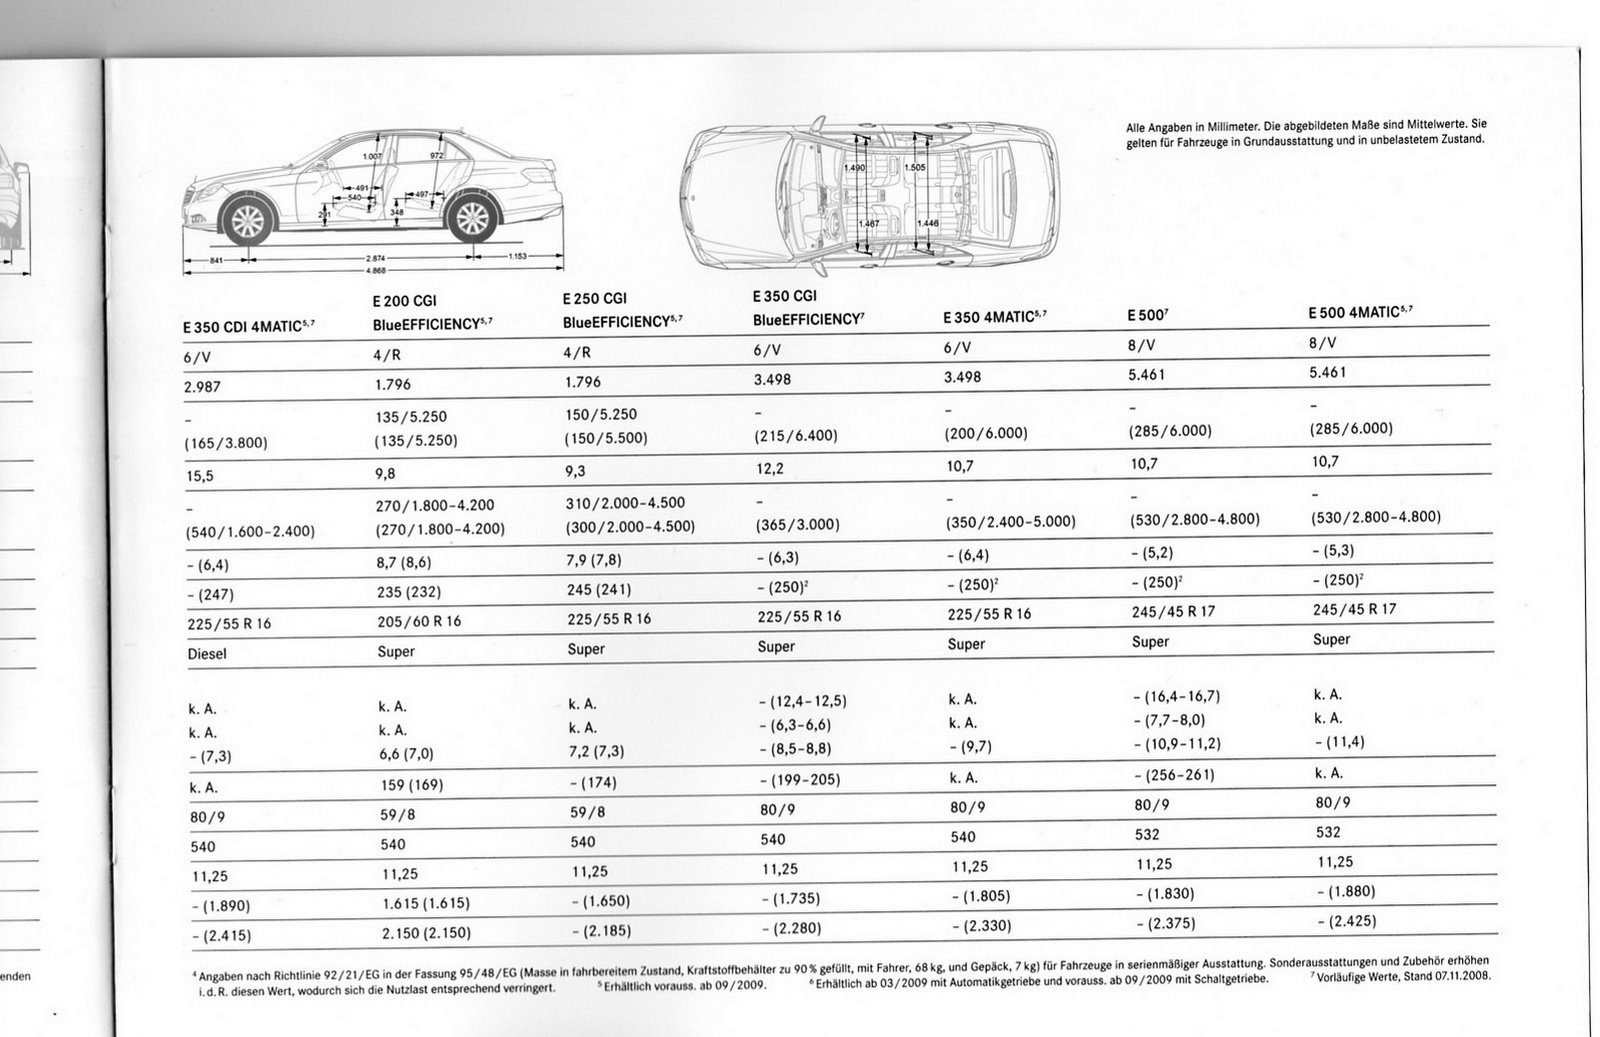 2010 Mercedes E-Class Sedan official brochure scans leaked